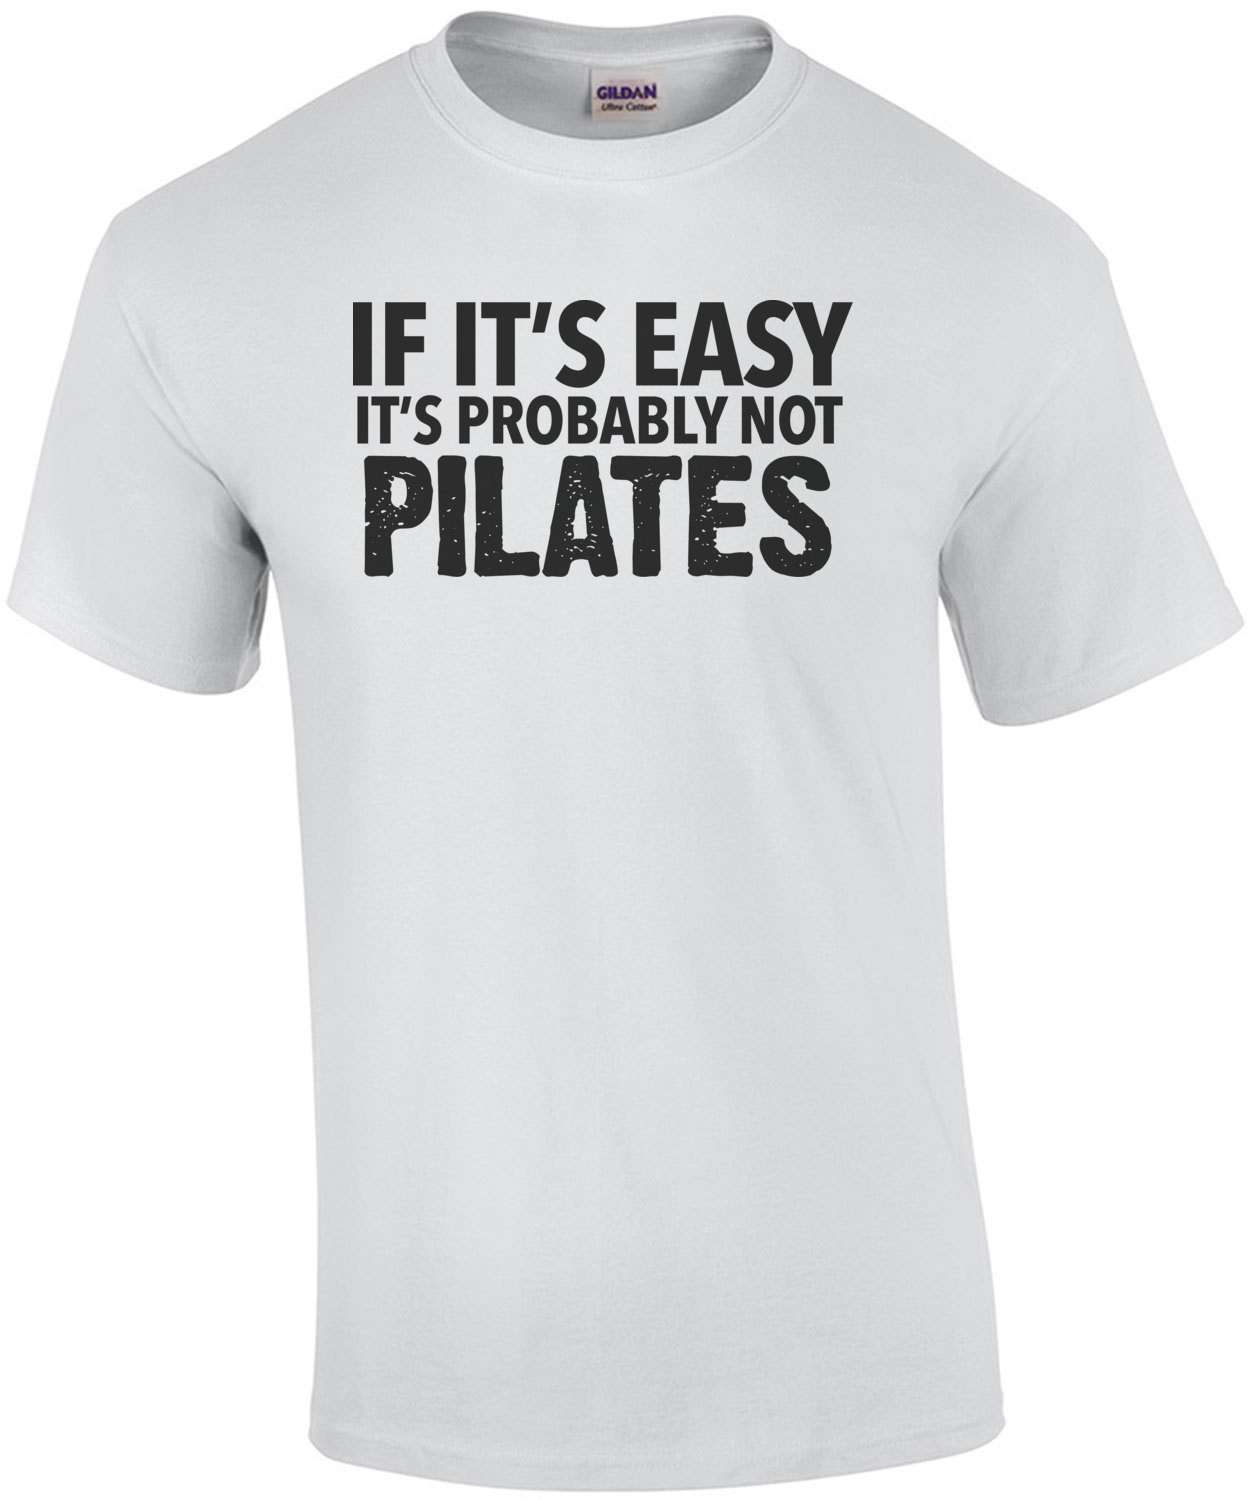 If it's easy it's probably not Pilates - exercise t-shirt - pilates t-shirt